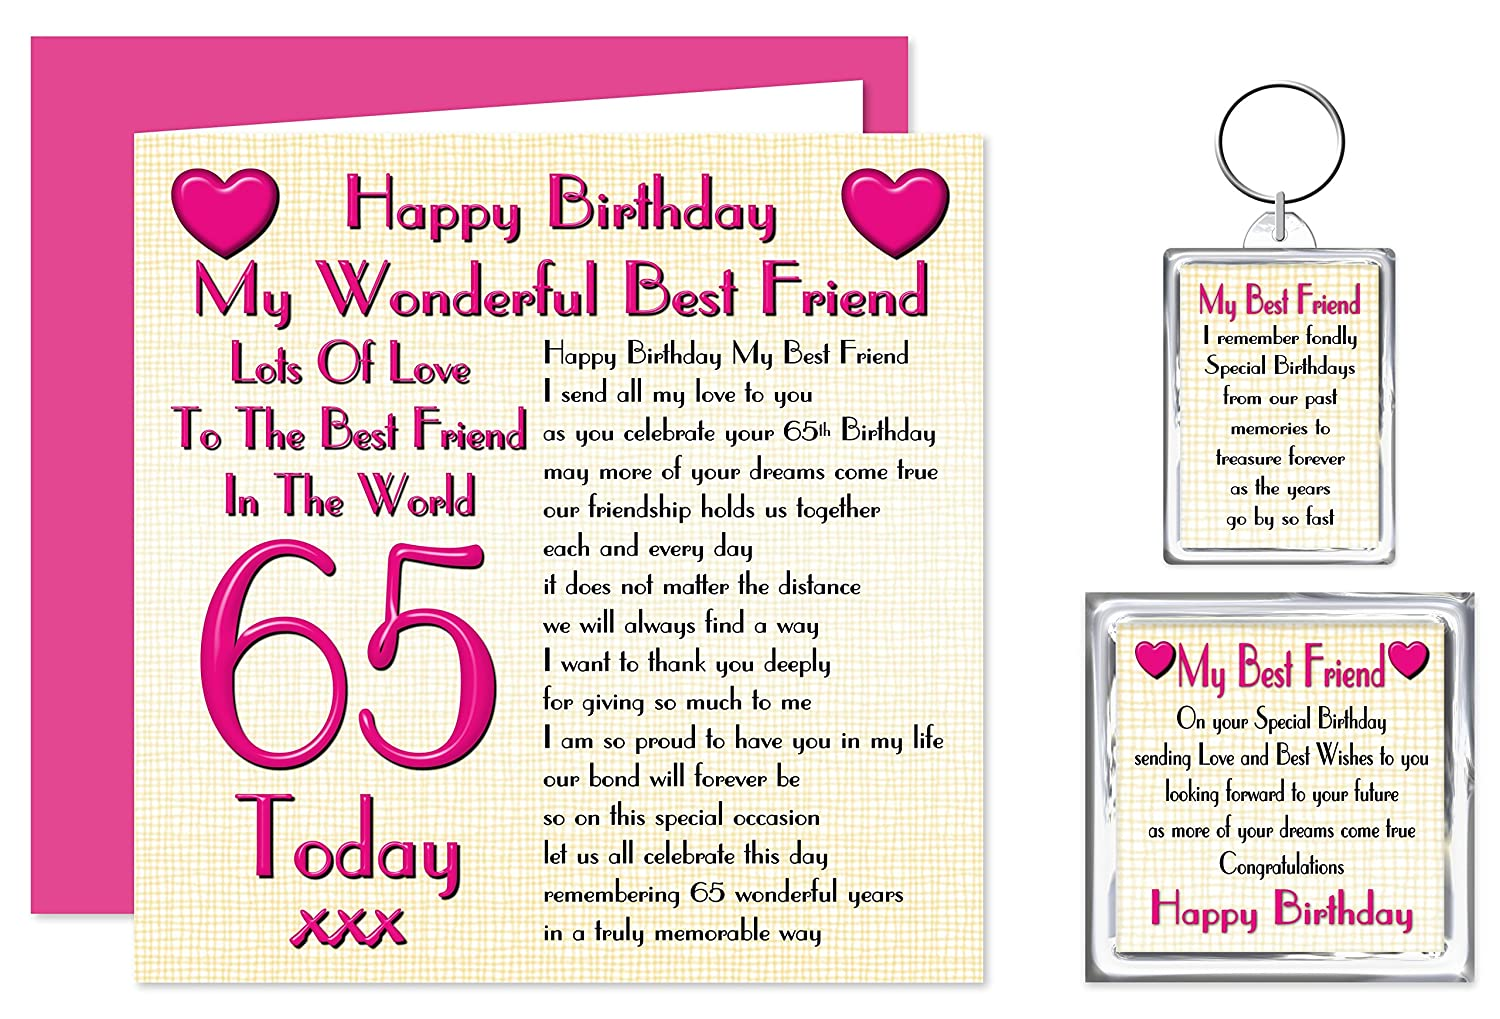 Download 65th birthday card turning 65 happy 65th birthday friend - Best Friend 65th Happy Birthday Gift Set Card Keyring Fridge Magnet Present Lots Of Love To The Best Friend In The World 65 Today Amazon Co Uk